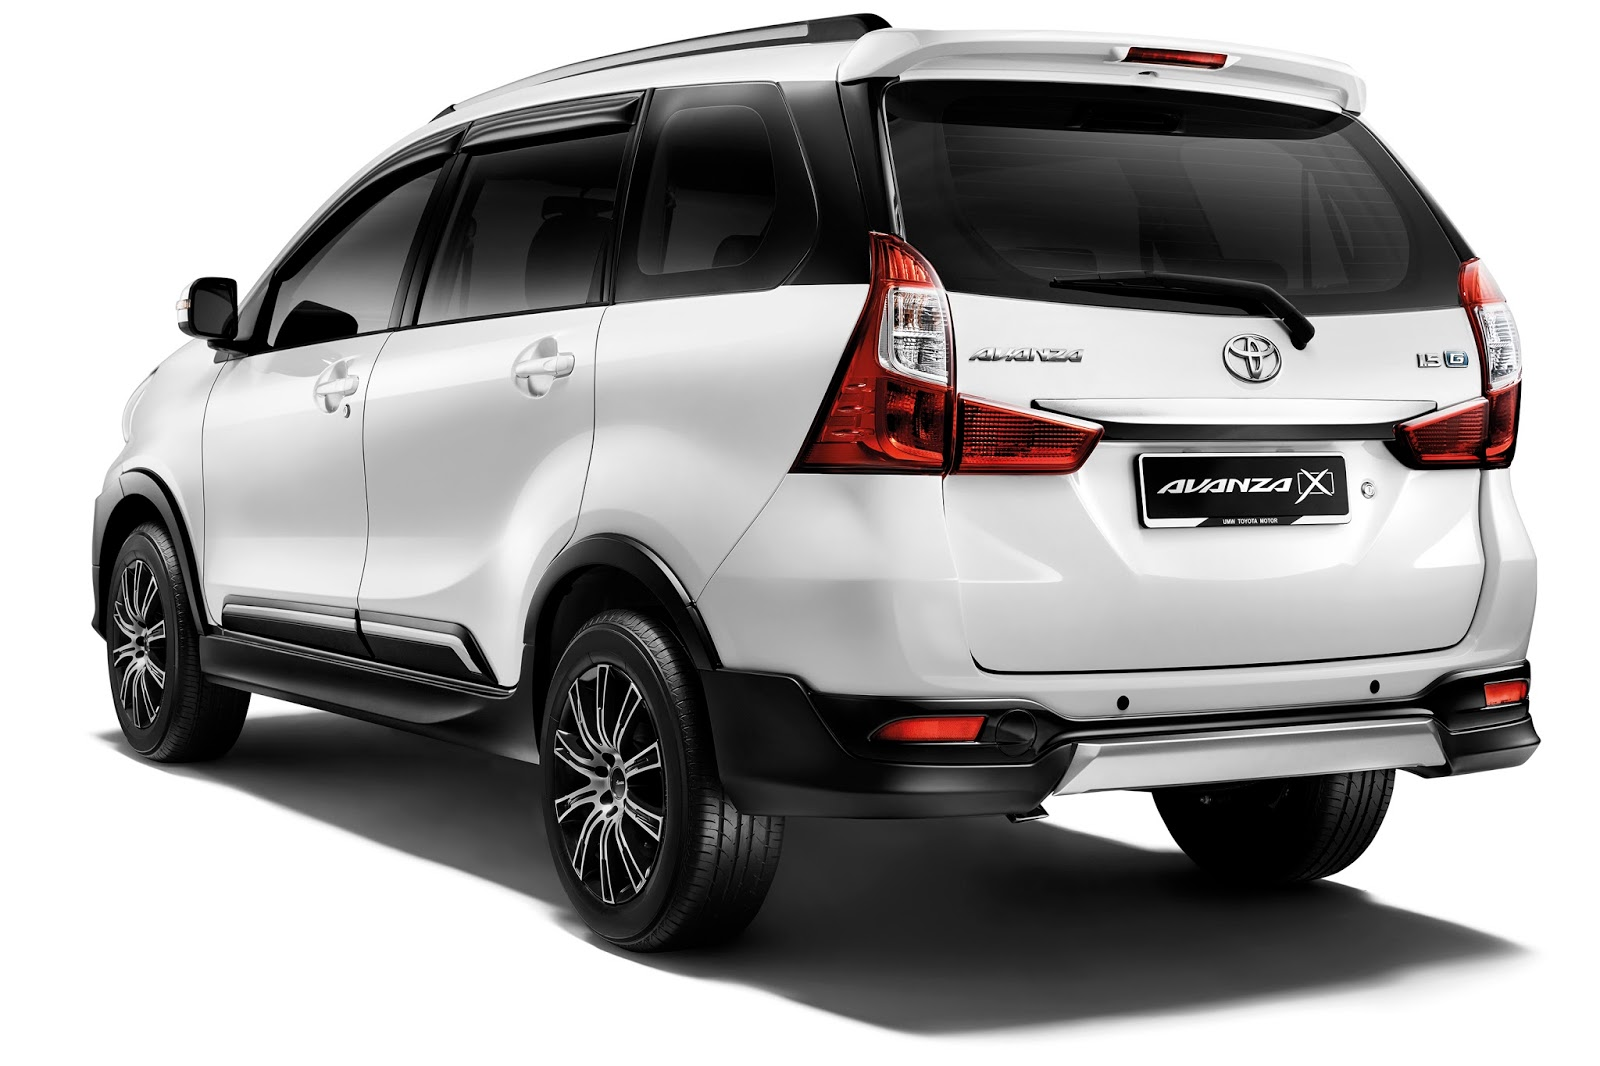 Launching Grand New Avanza E Matic Motoring Malaysia Umw Toyota Launches Another